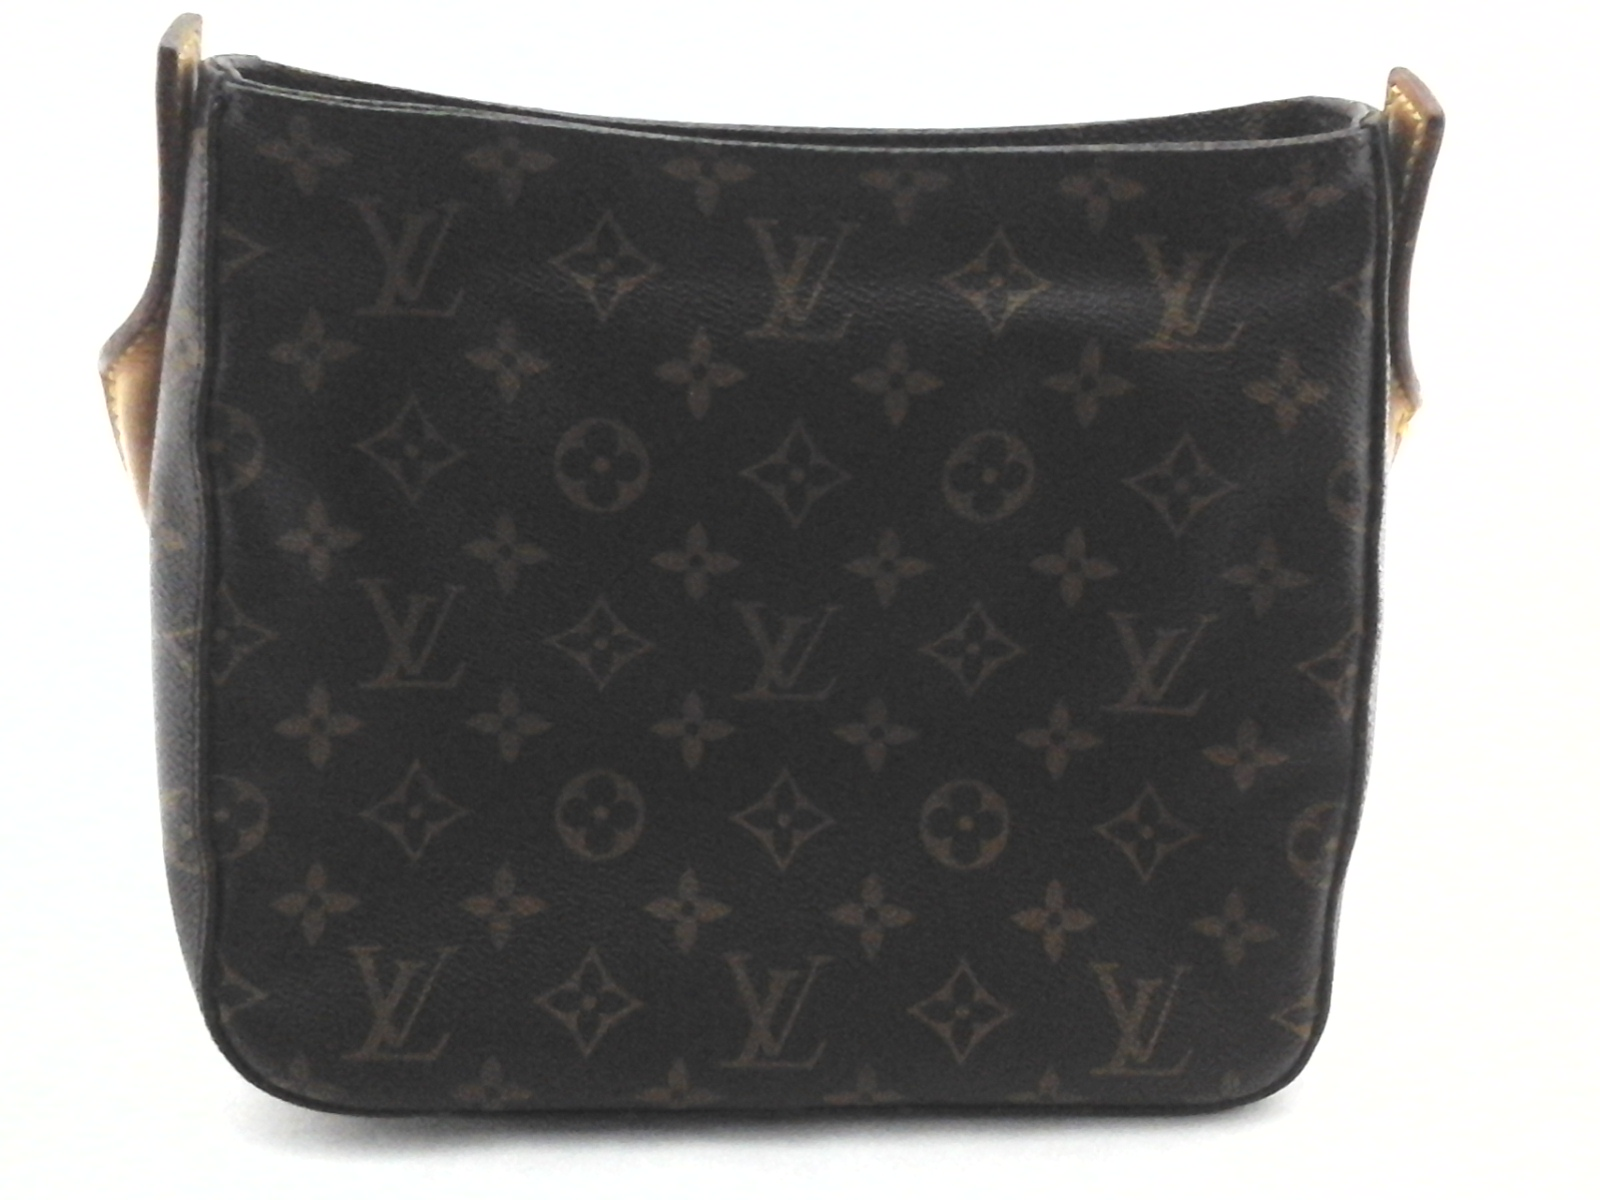 4bd07dd21668 Details about LOUIS VUITTON Purse Tote Looping Handbag Shoulder Bag Brown  with LV Logo  1600